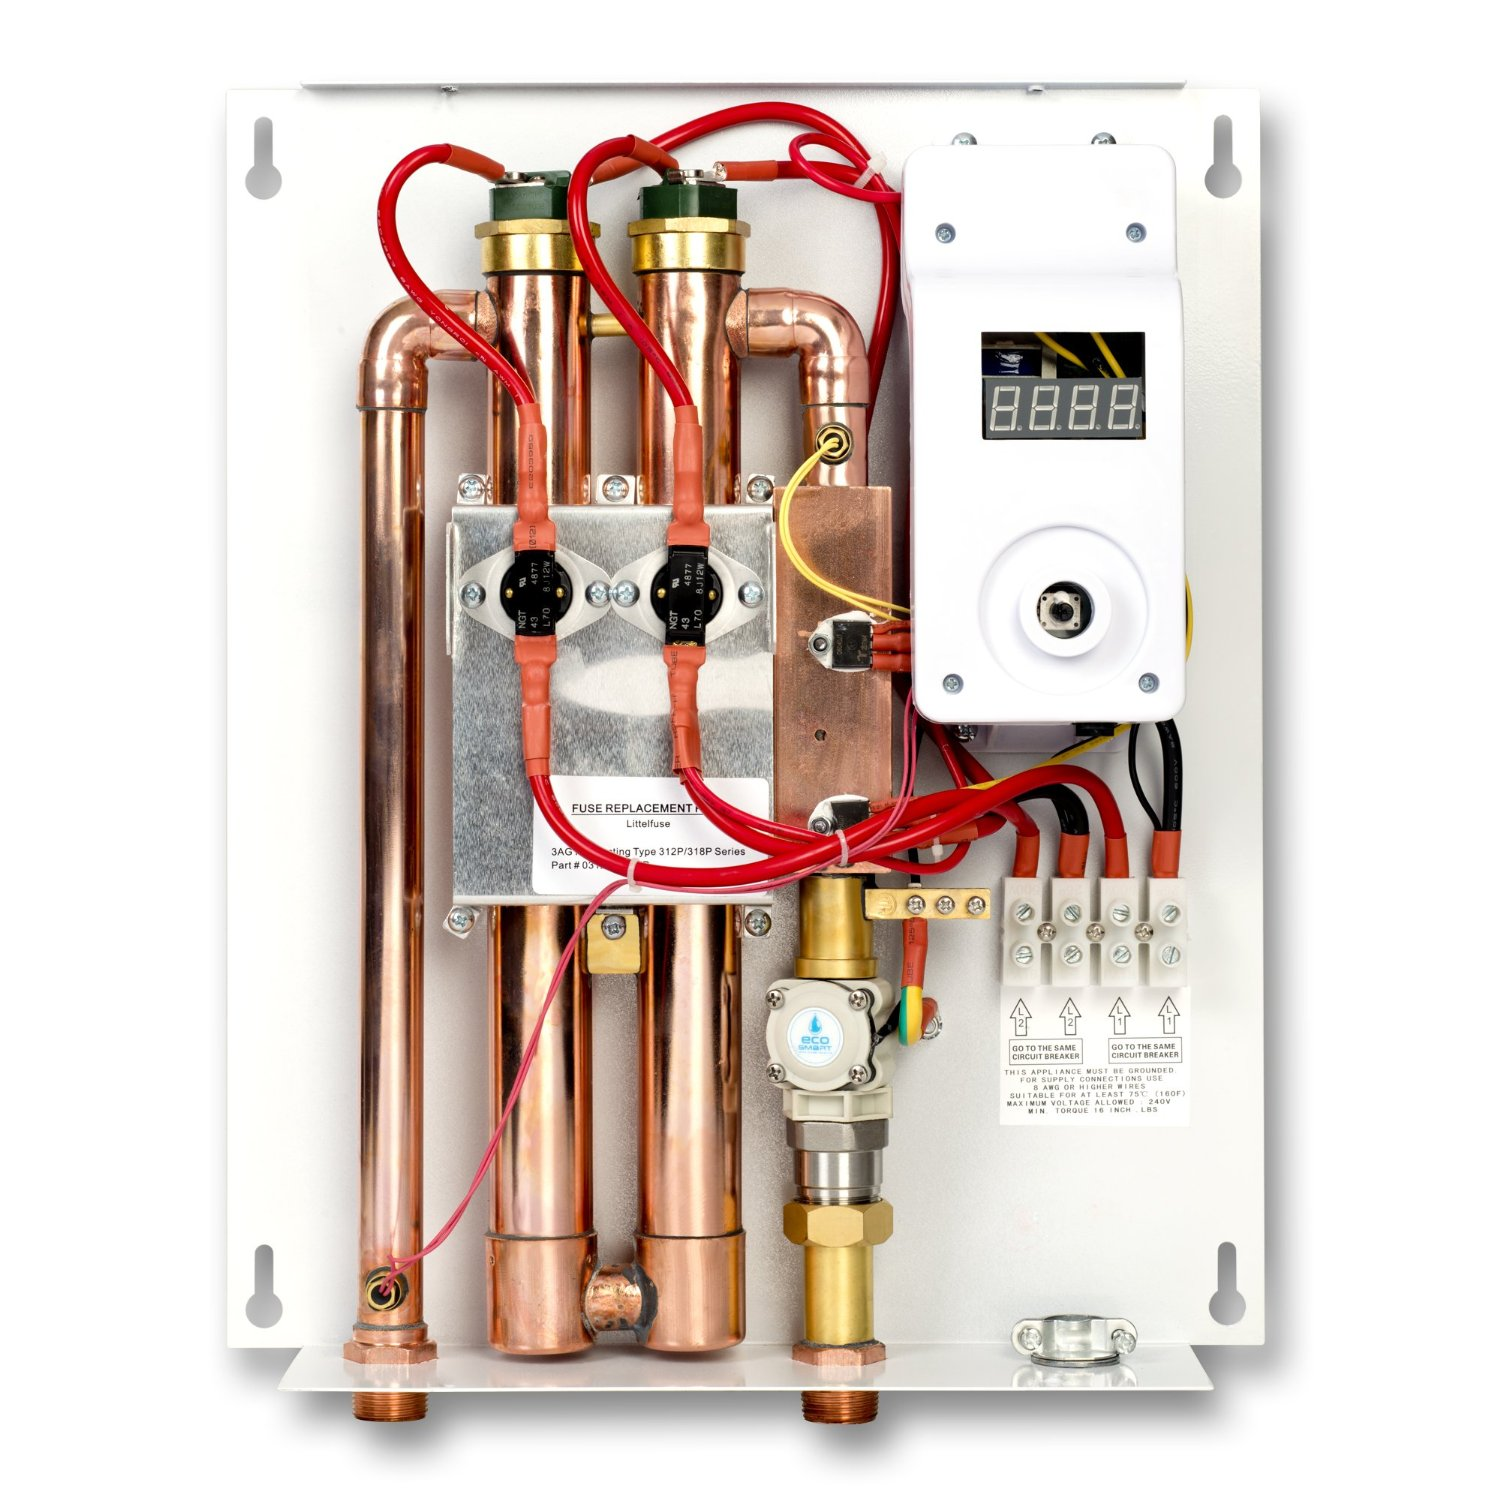 81Tny3DEHPL._SL1500_ ecosmart eco 18 electric tankless water heater patented self rheem rte 9 wiring diagram at bakdesigns.co